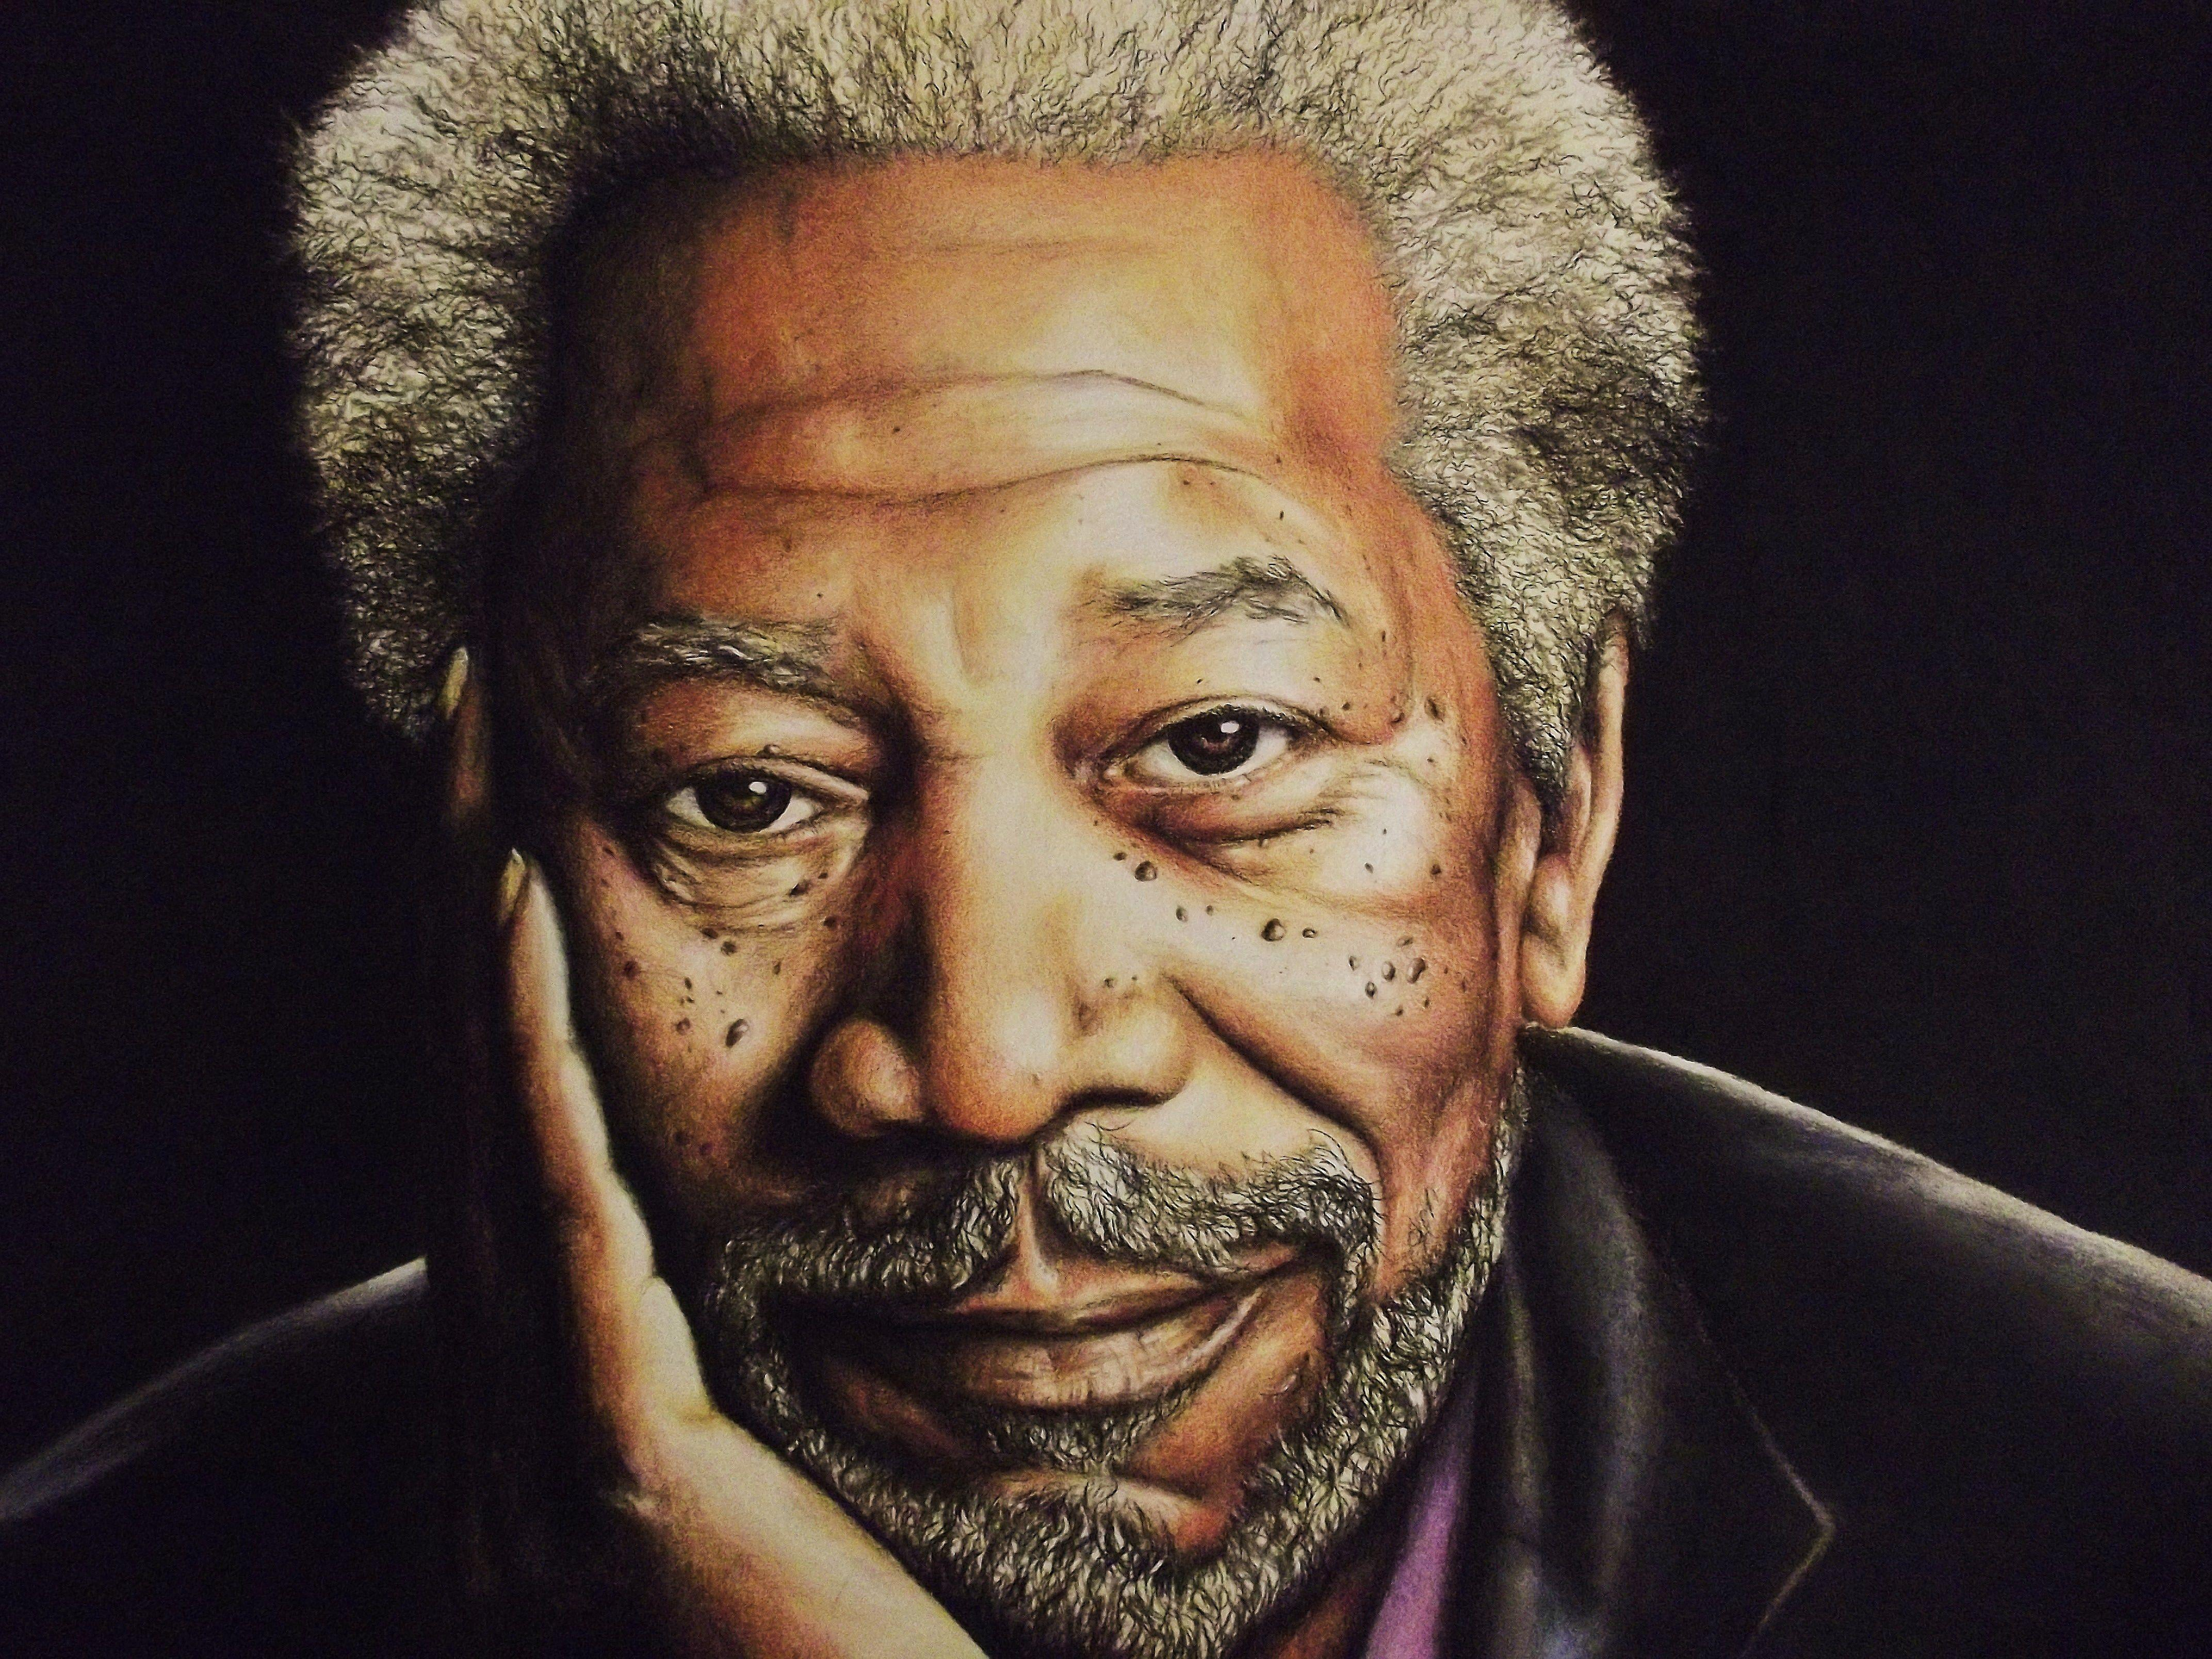 63 Morgan Freeman HD Wallpapers | Backgrounds - Wallpaper Abyss